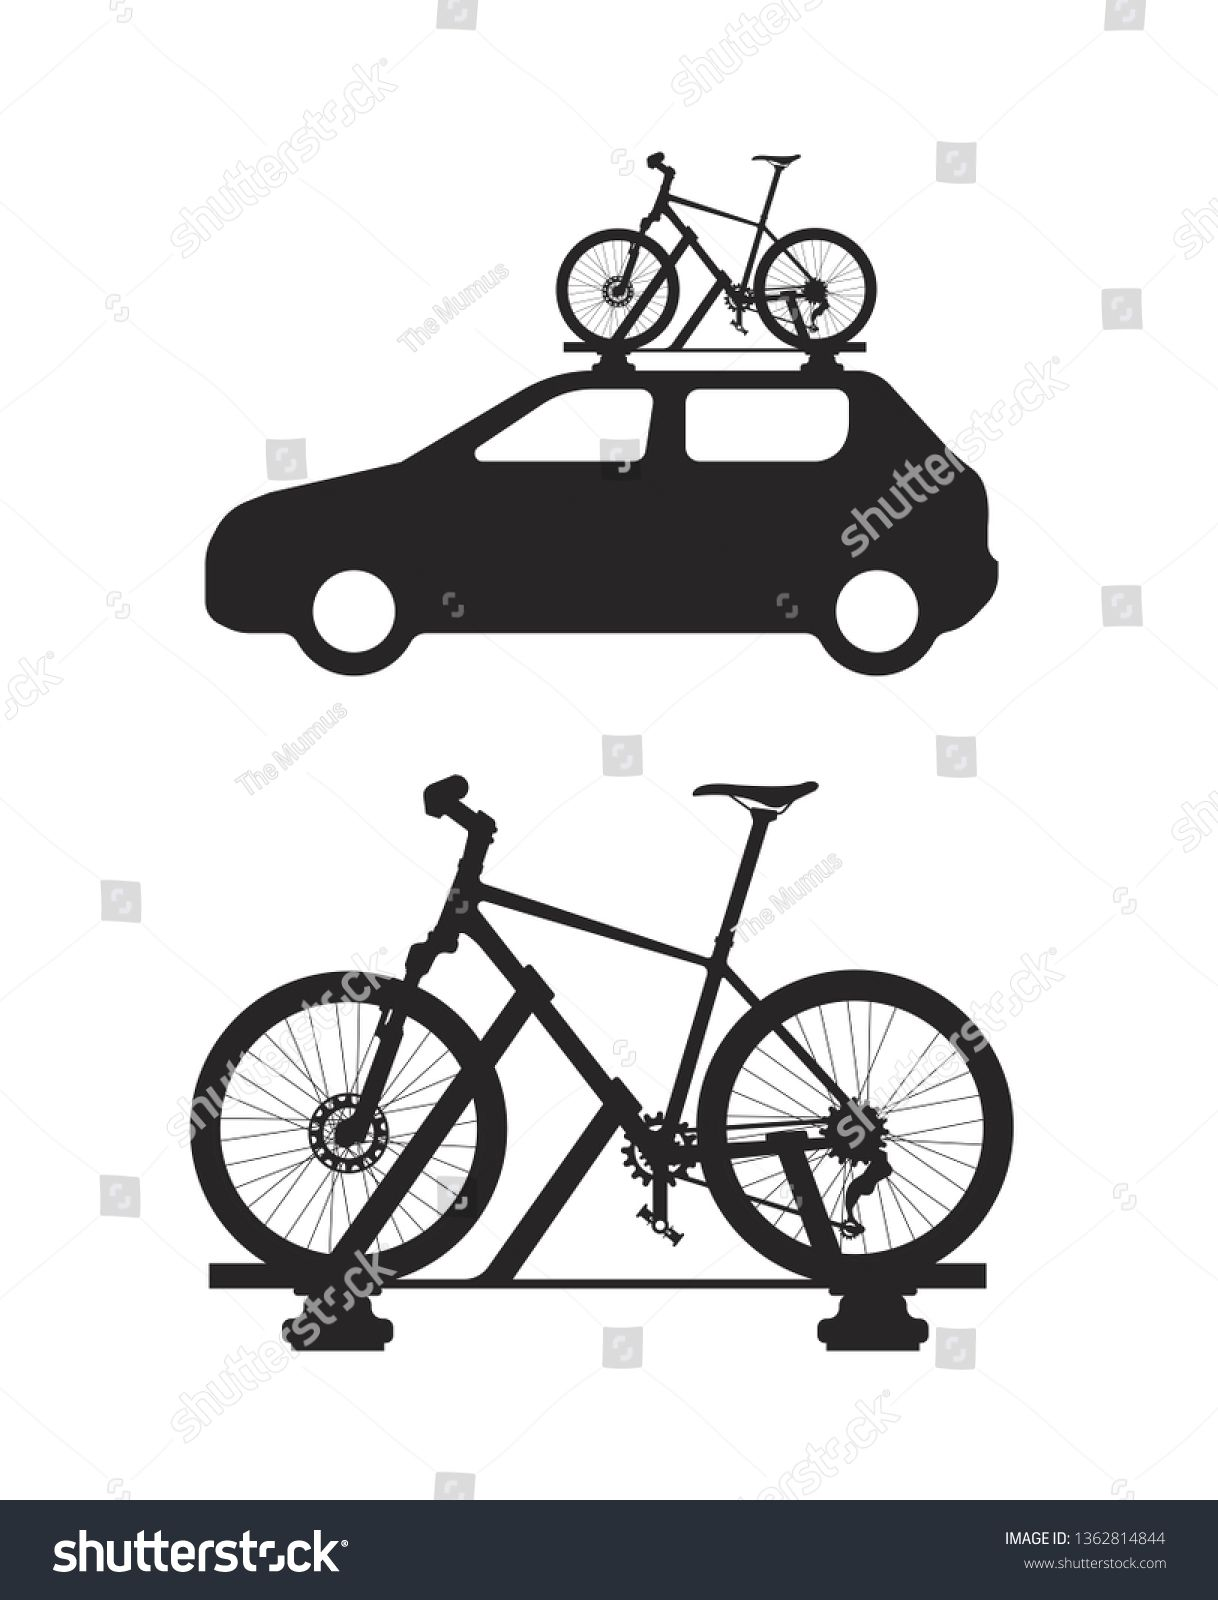 Car With Bicycle Roof Rack Transporting Bicycles On The Roof Ad